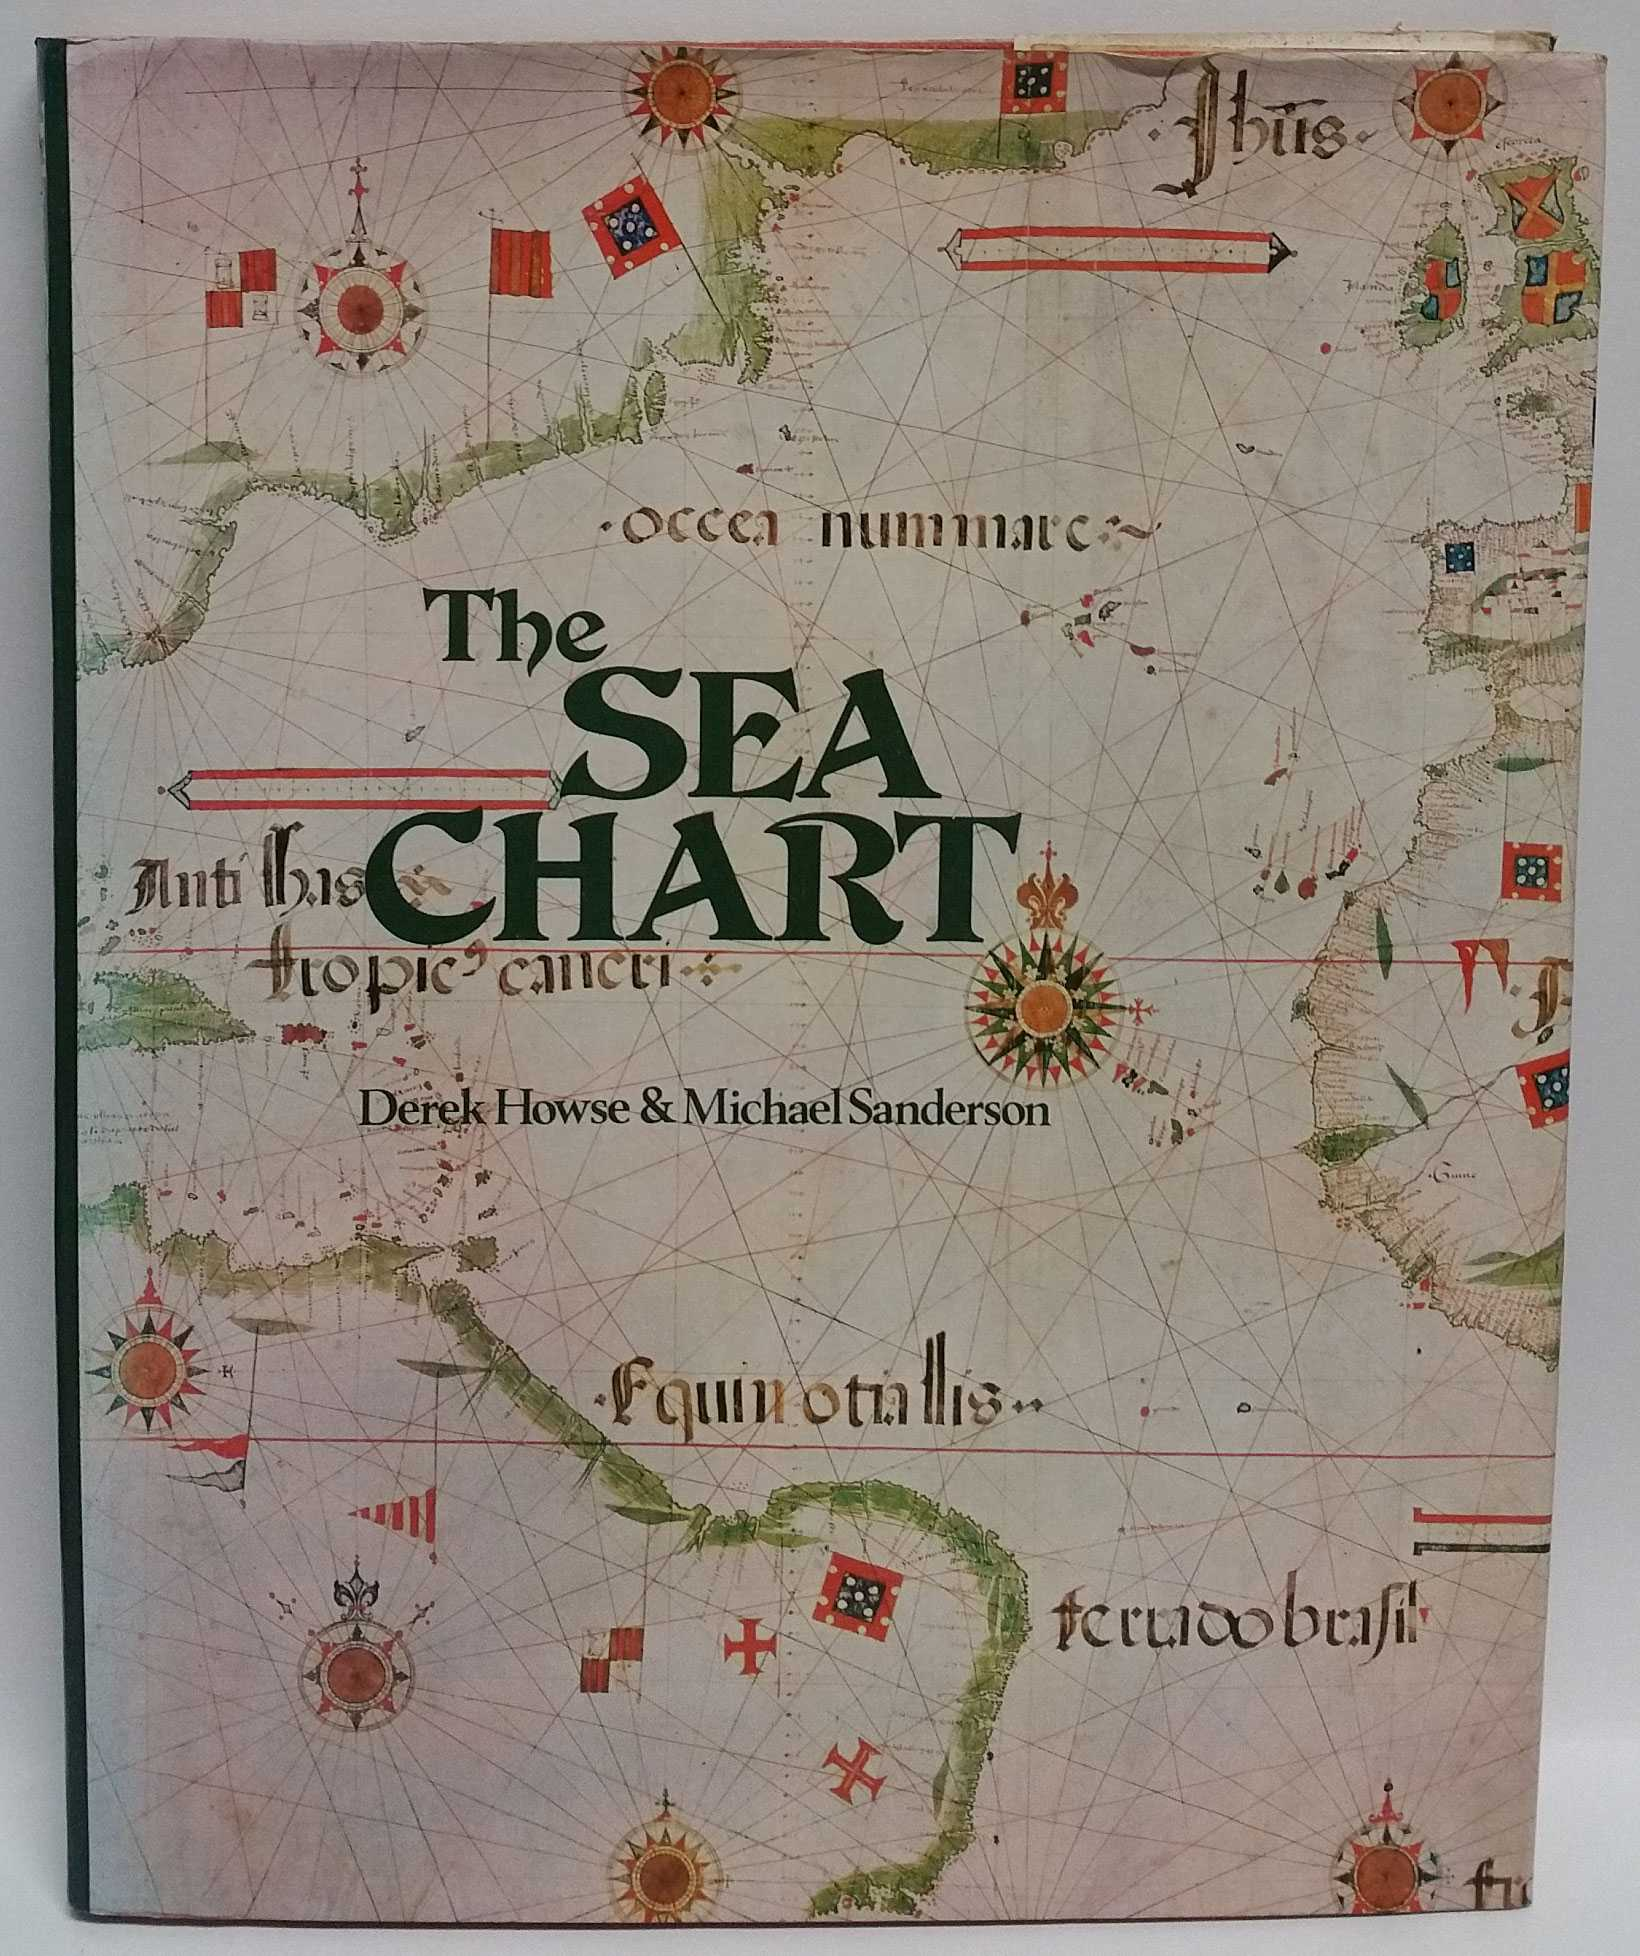 The Sea Chart: An Historical Survey based on the Collections in the National Maritime Museum, Derek Howse; Michael Sanderson